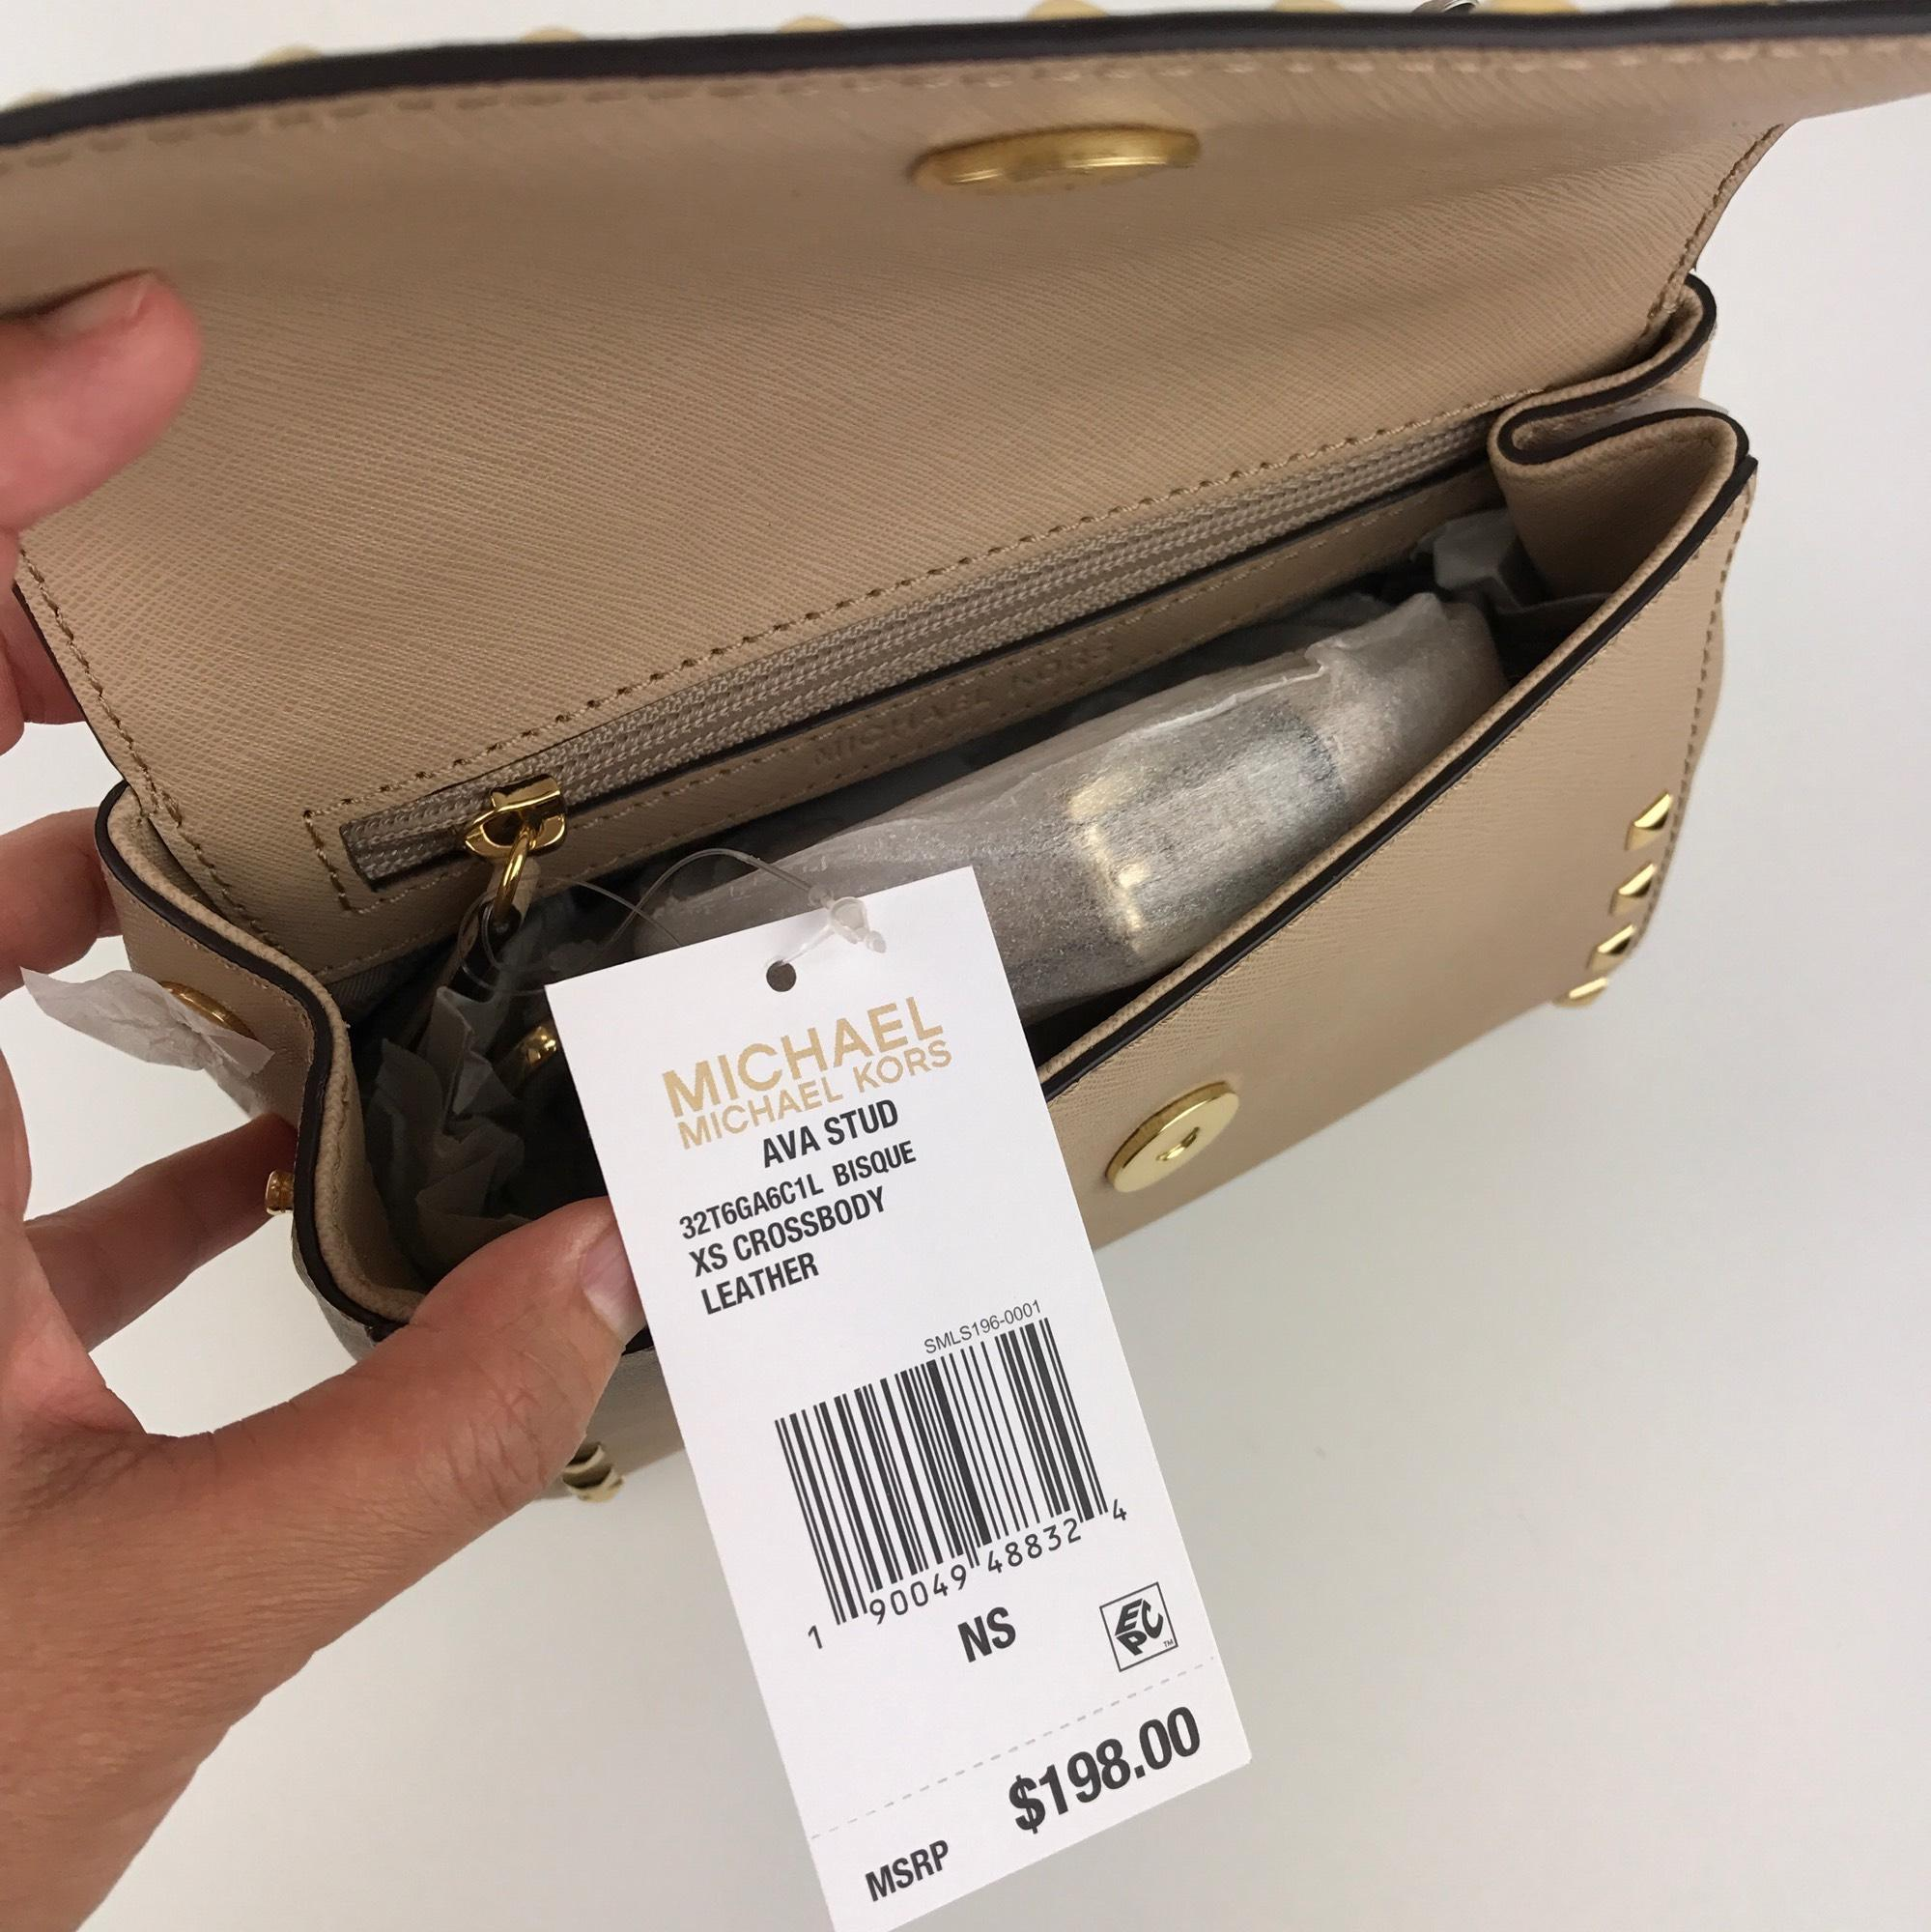 44ecea44a67d83 reduced new michael kors ava xs extra small mini satchel crossbody leather  pale gold a25fc 2b024; usa michael kors satchel in bisque. 123456789 4abcd  7e83d